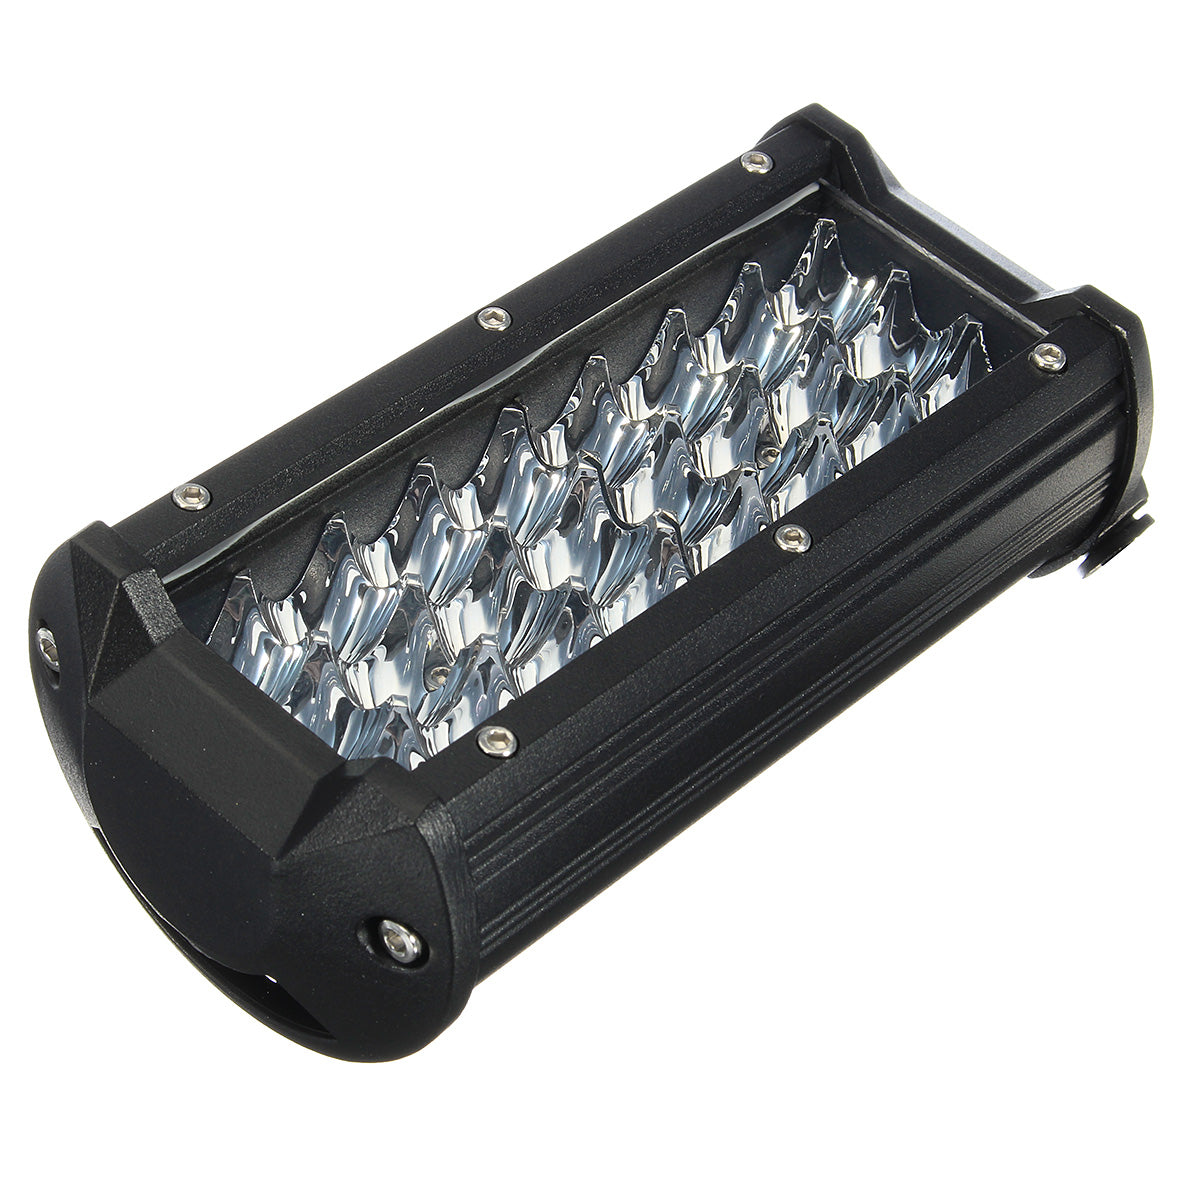 Car 72W 24 Dual Row Spot LED Light Bar for Off-road Trucks Motorcycles Automobiles